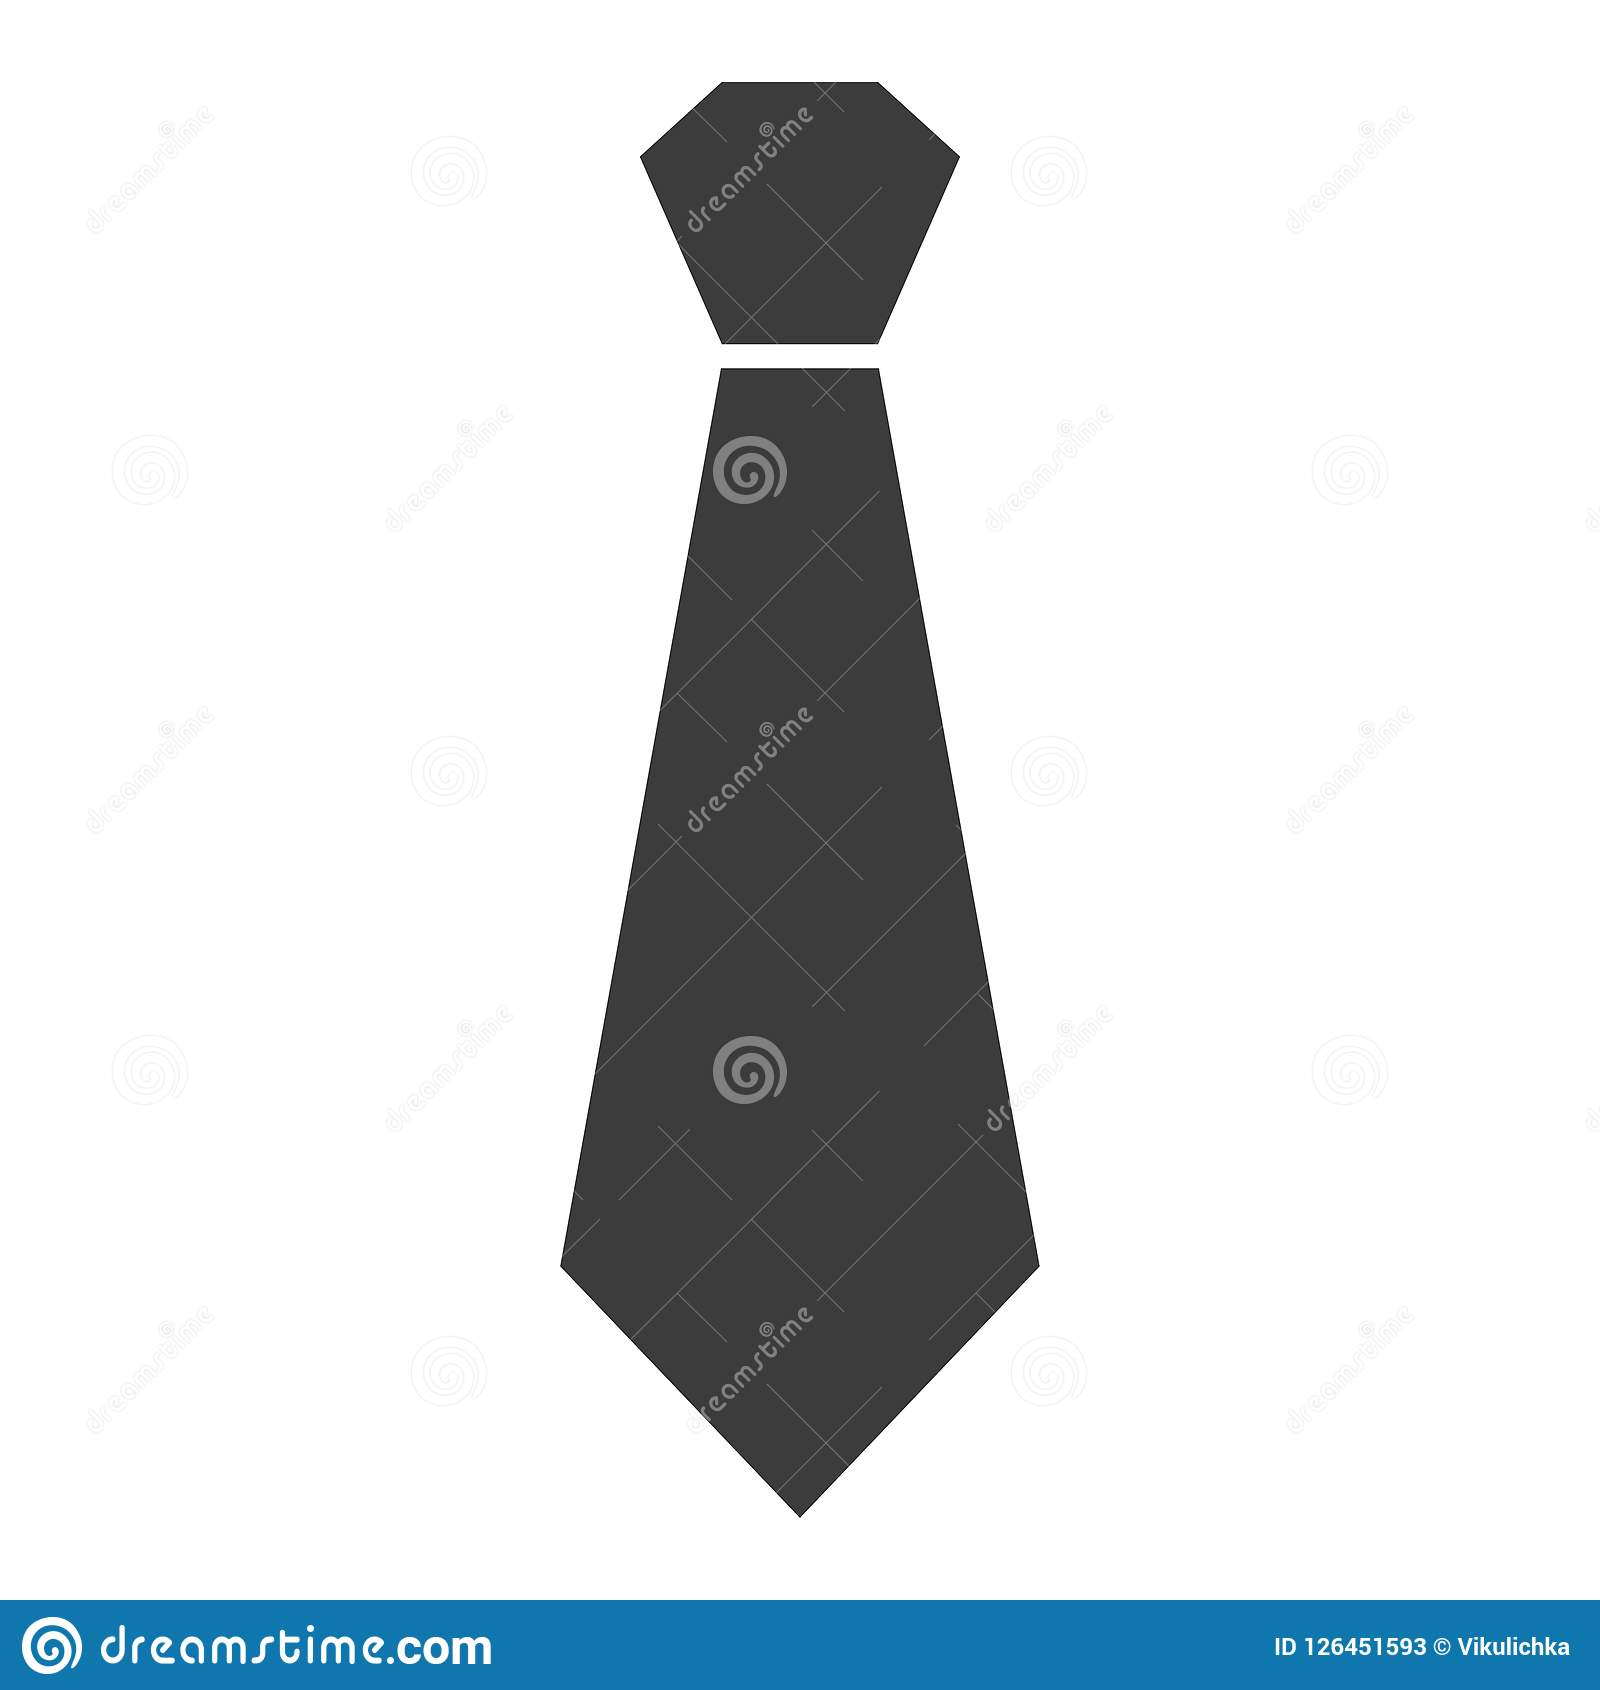 Tie Textile Apparel Tie For Men Cravate Symbol Clothing Item